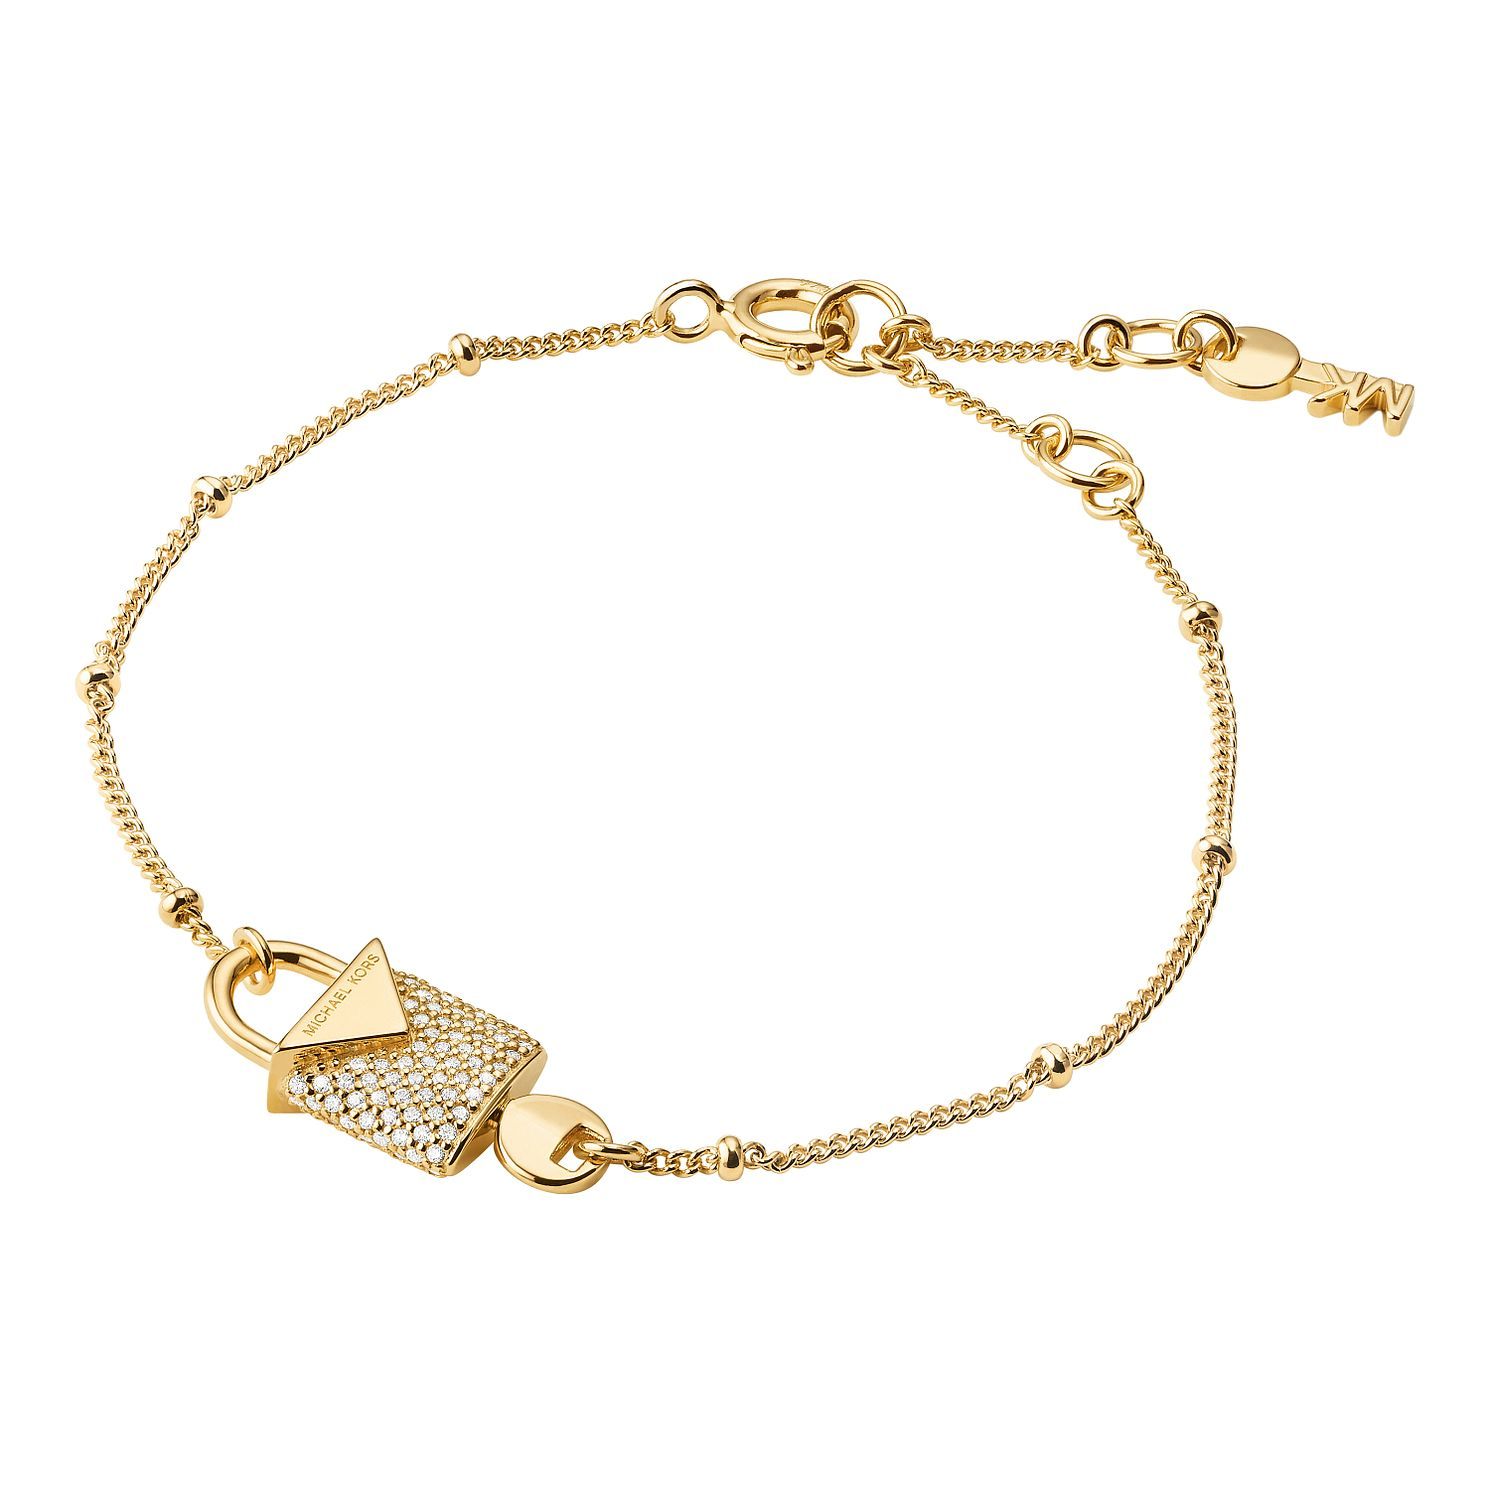 Michael Kors 14ct Yellow Gold Plated Silver Pave Bracelet - Product number 9801170